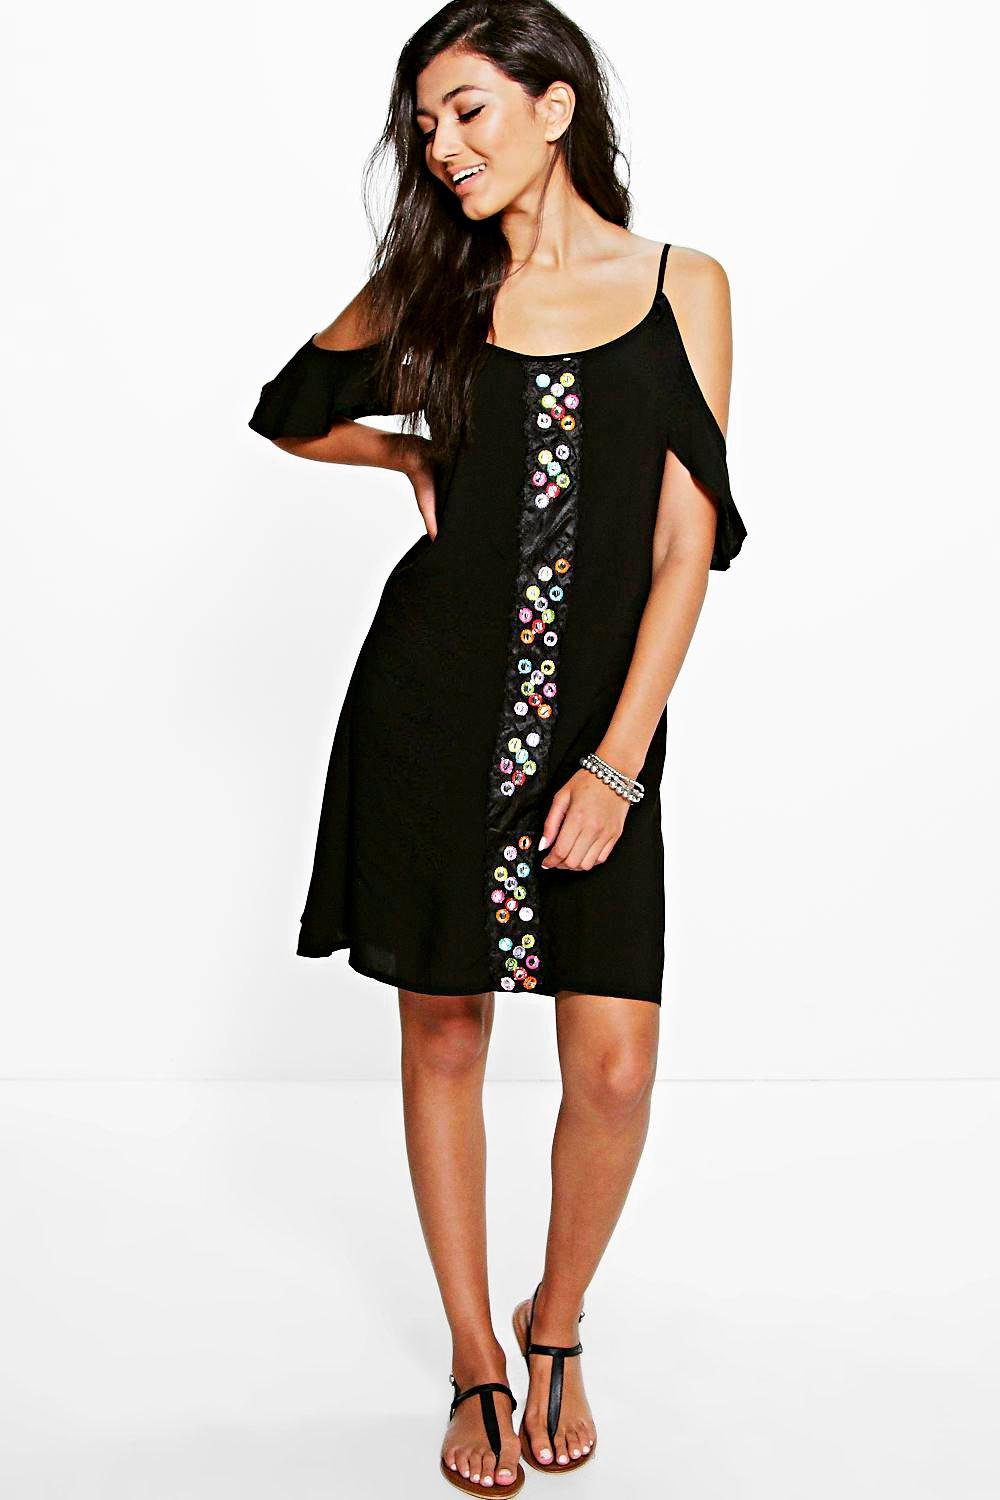 Lara Mirror Detail Cold Shoulder Beach Dress